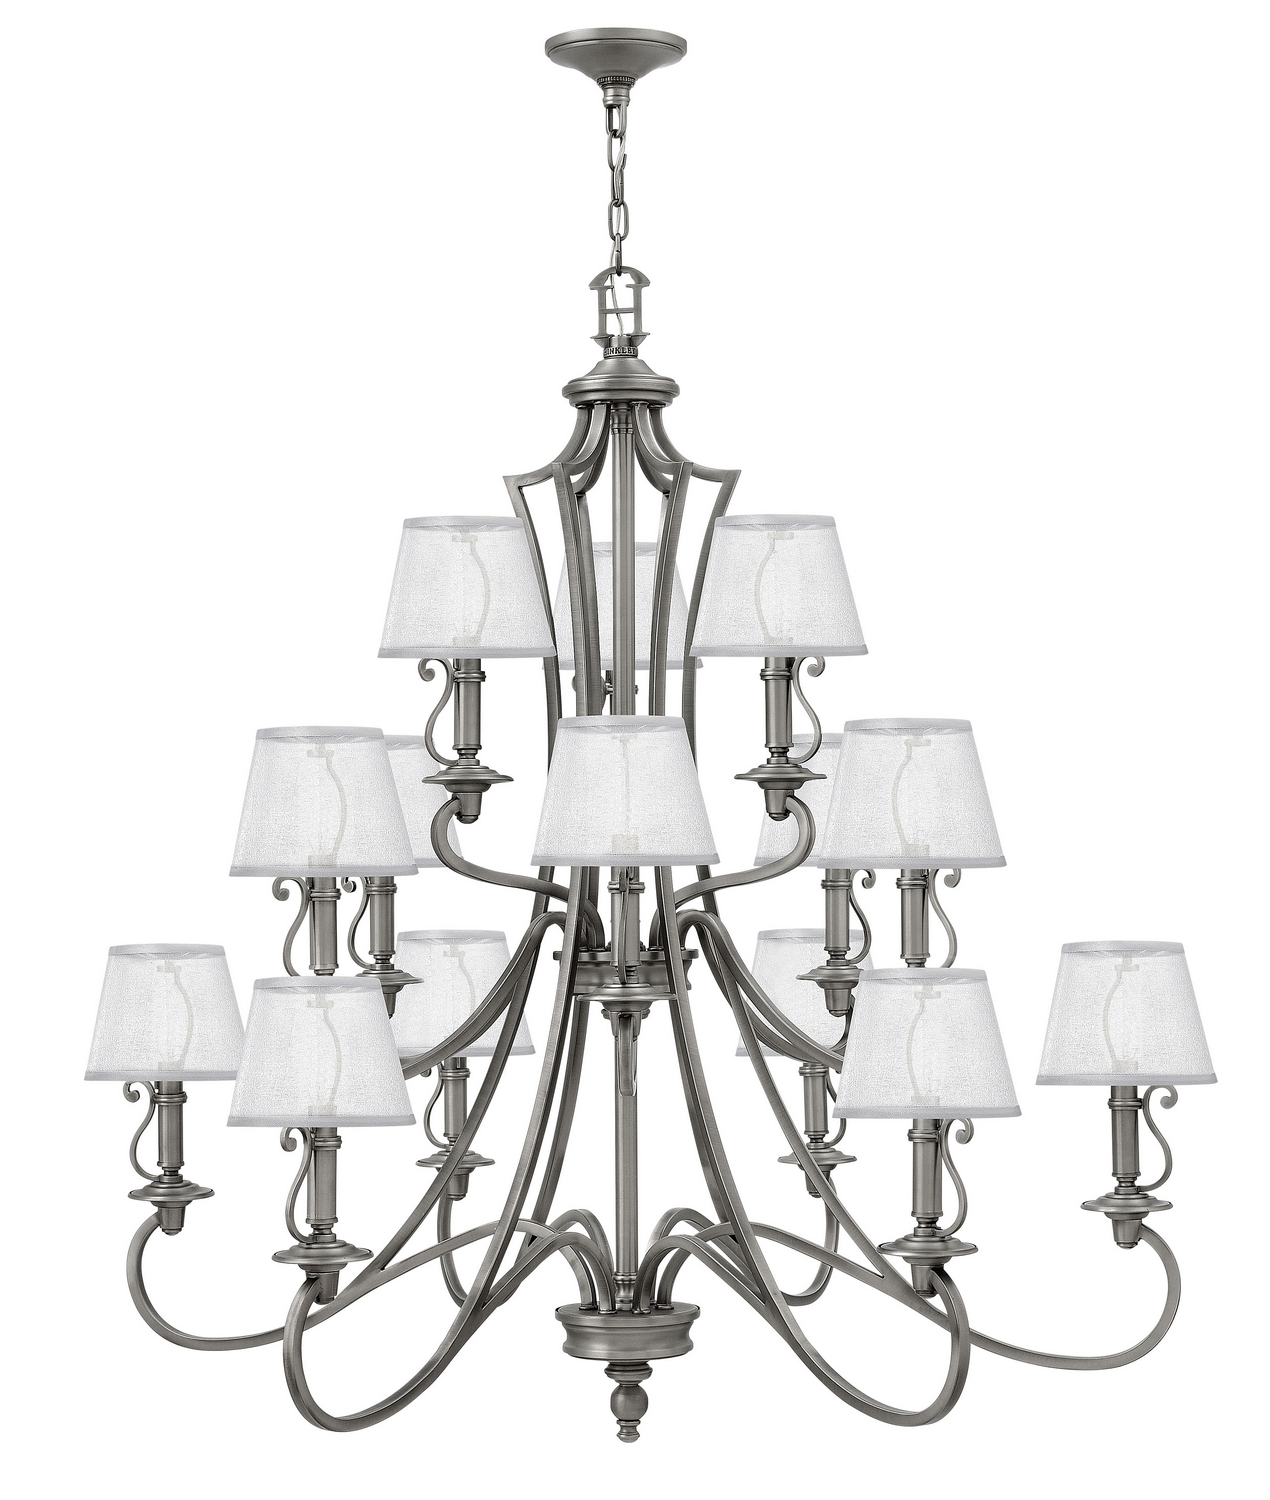 15 Light Foyer Pendant from the Plymouth collection by Hinkley 4249PL